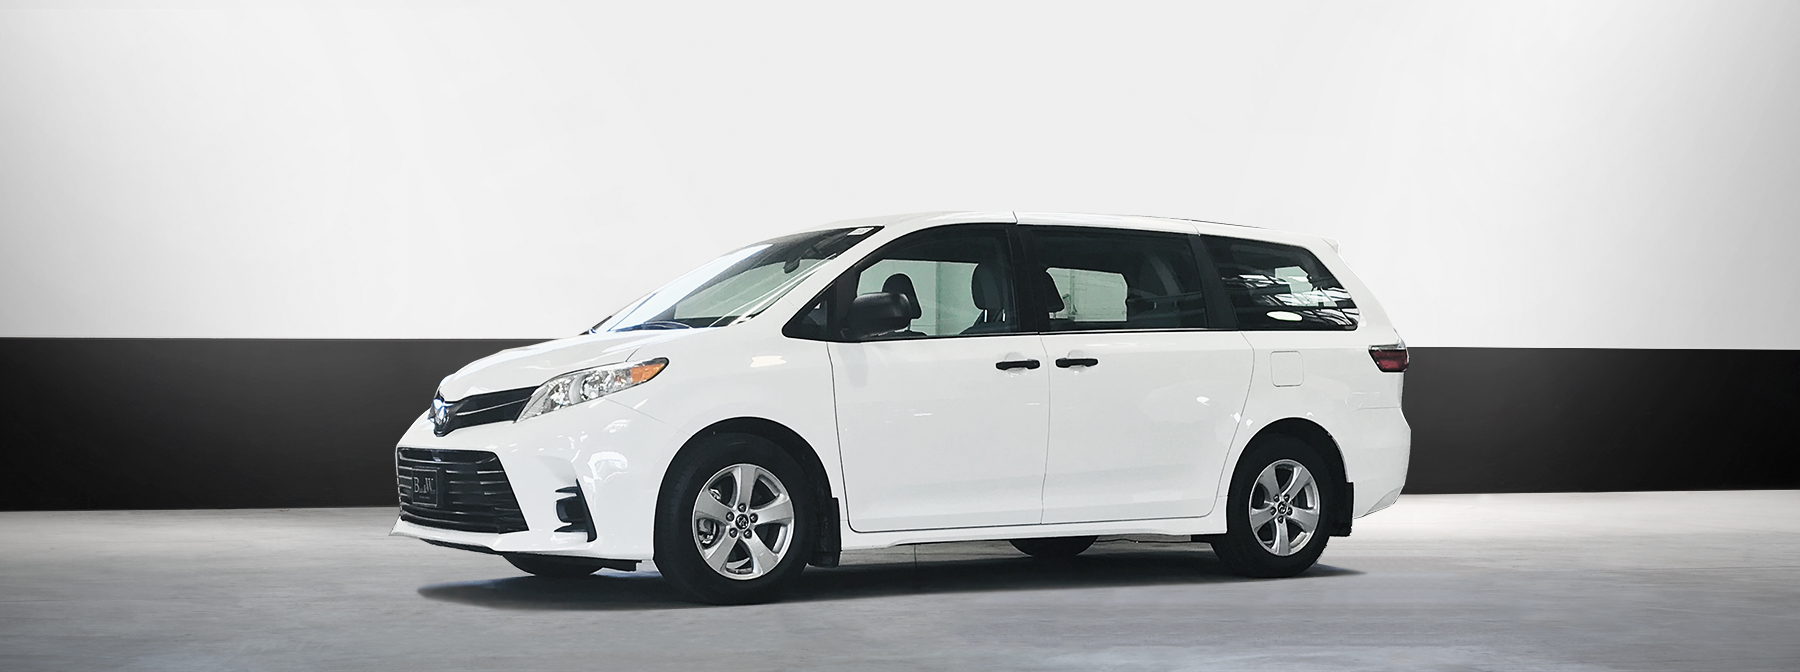 Cheap Toyota Rentals In Los Angeles Or San Francisco Bw Car Rental